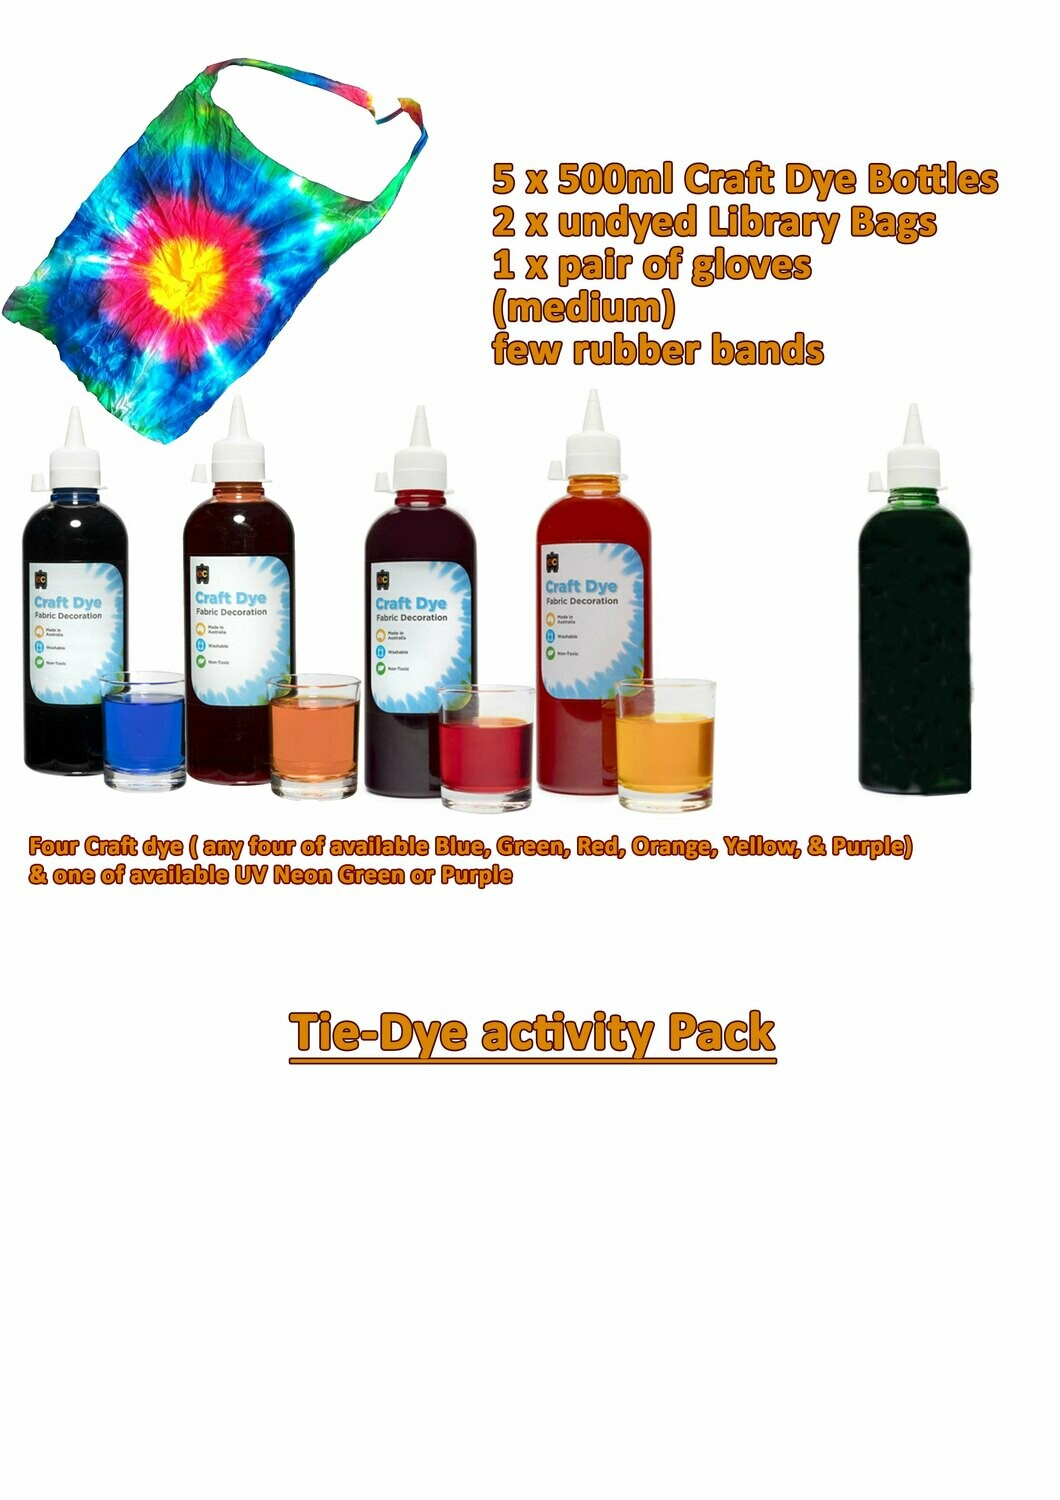 Tie-Dye Activity Pack